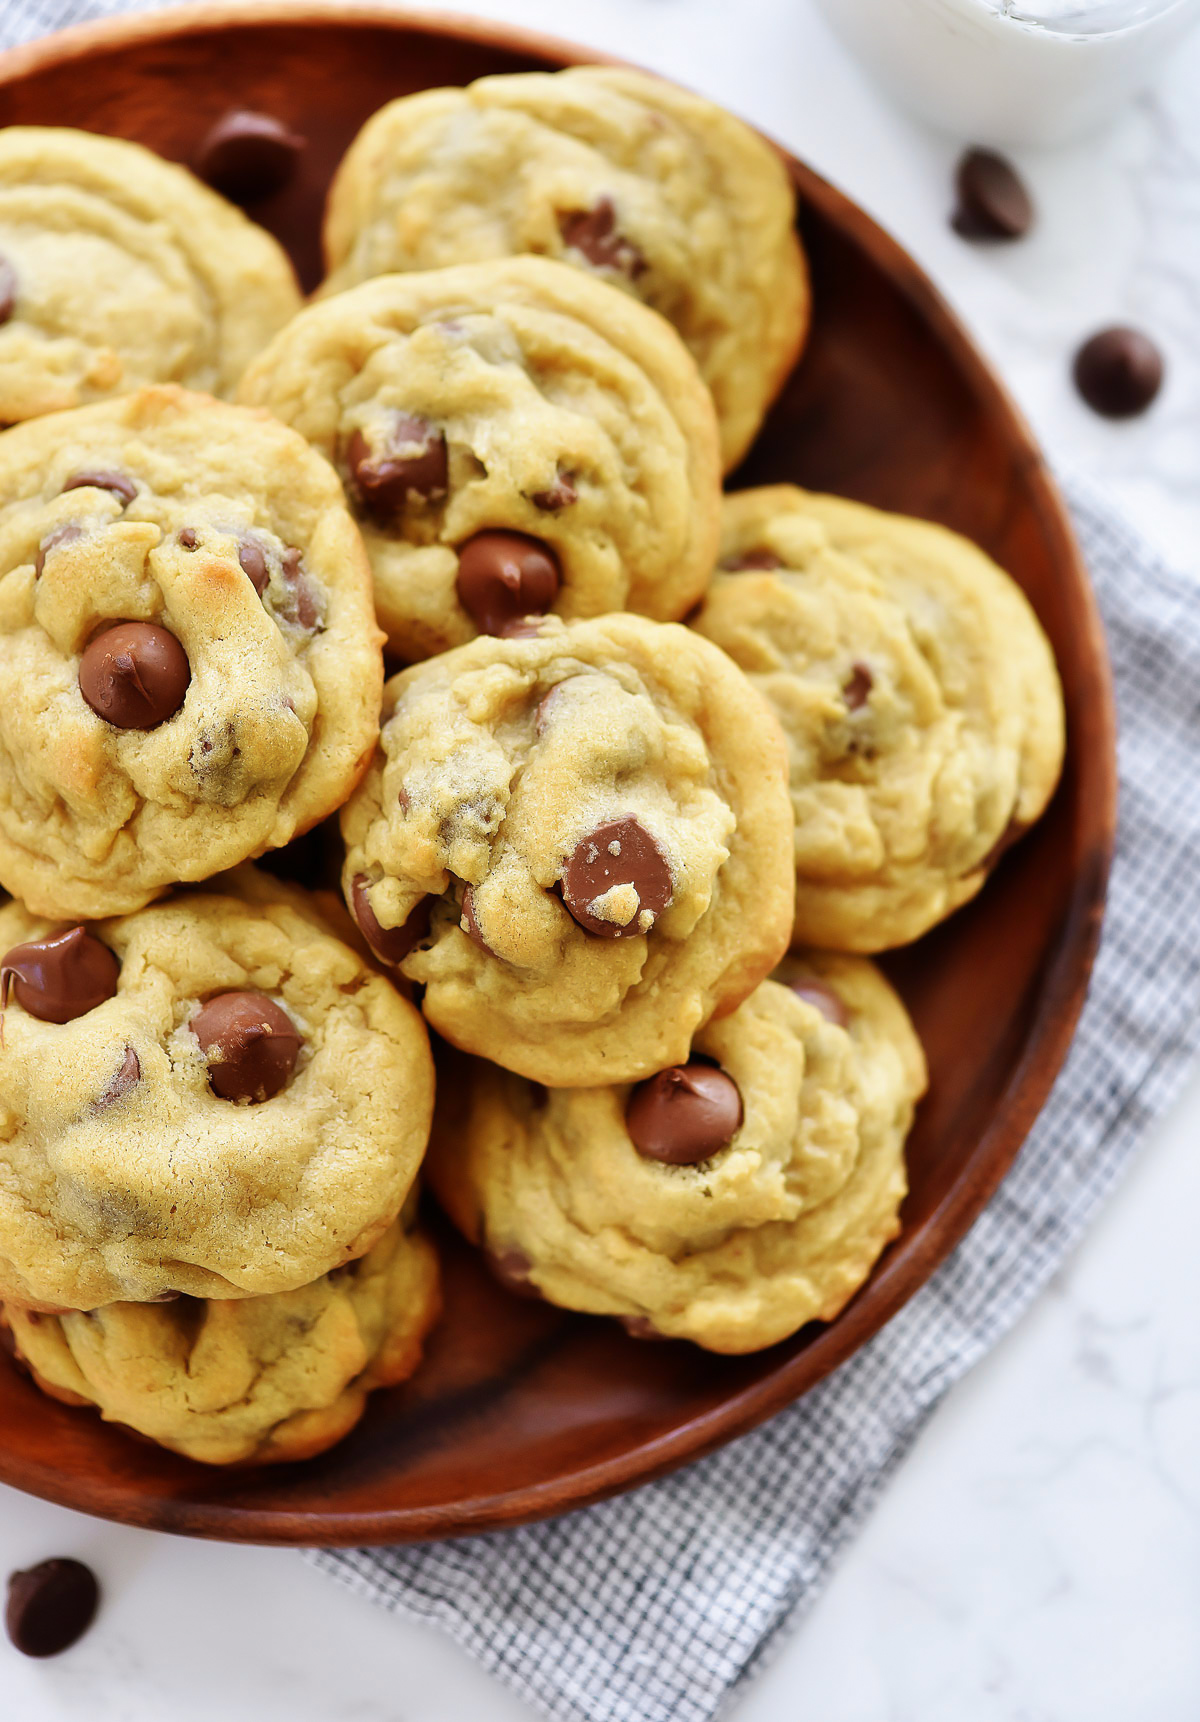 Chocolate Chip Pudding Cookies are delicious, soft chocolate chip cookies made with vanilla pudding mix. Life-in-the-Lofthouse.com